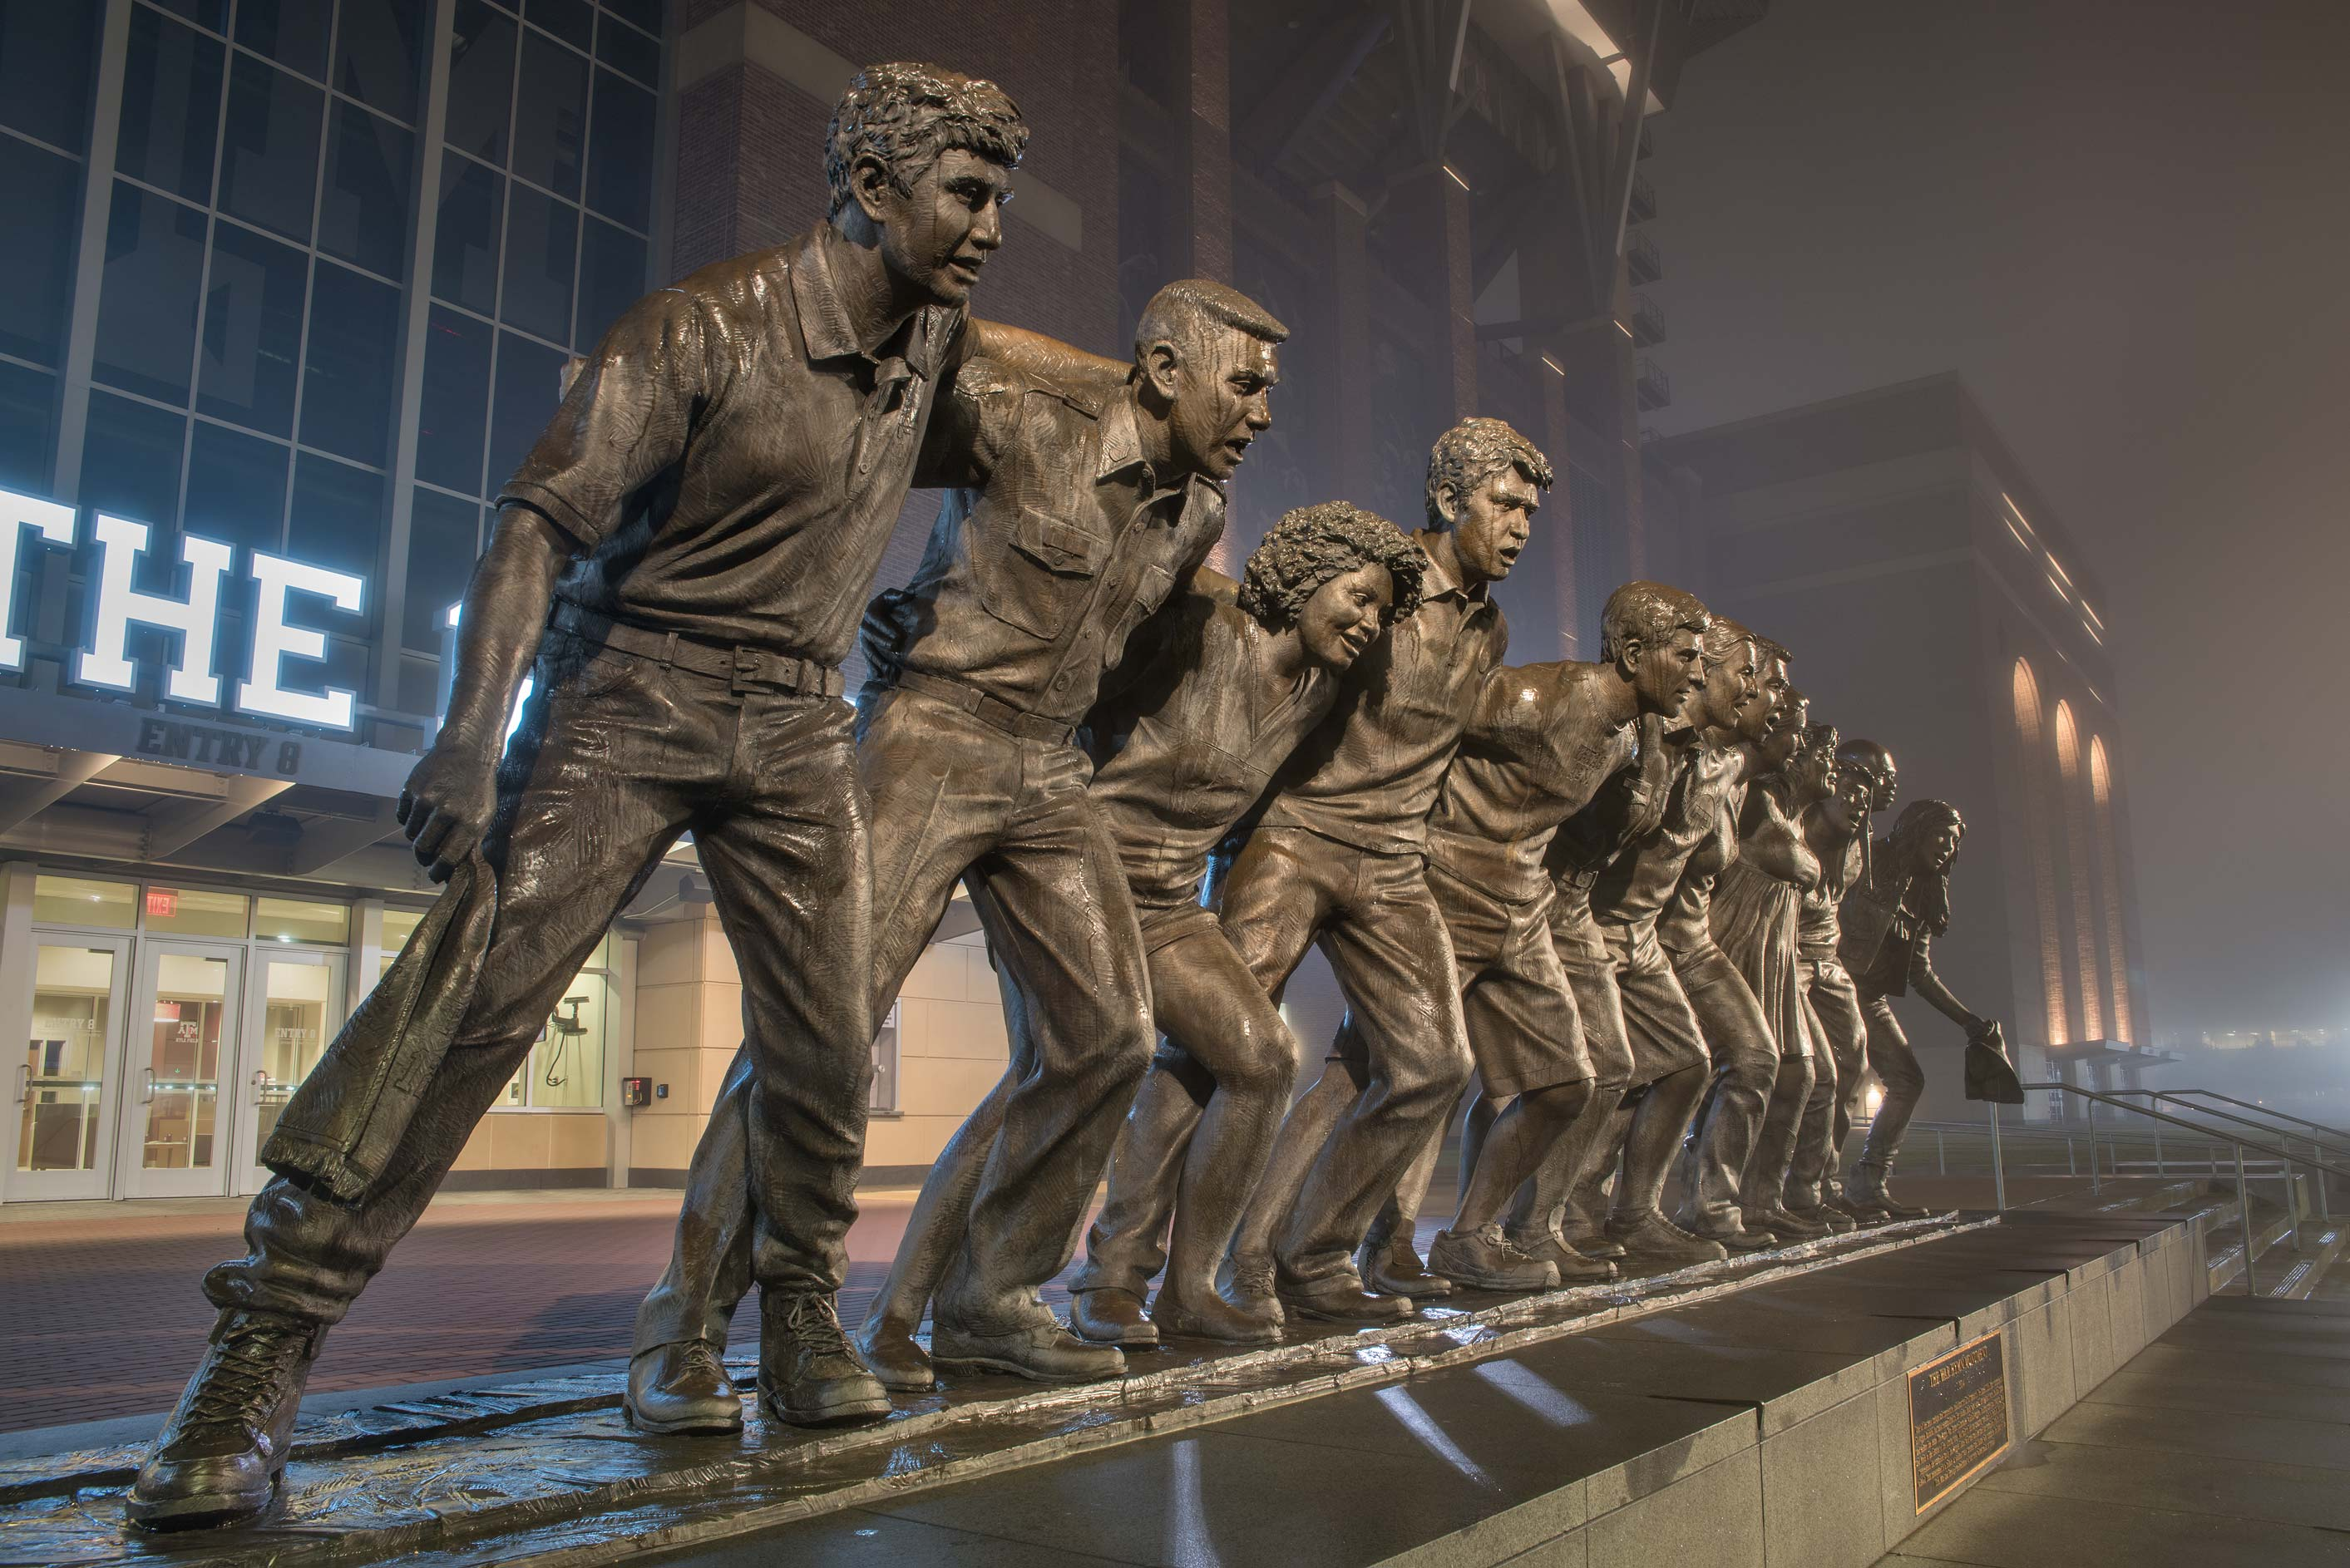 Bronze figures of 12 students standing together...A&M University. College Station, Texas